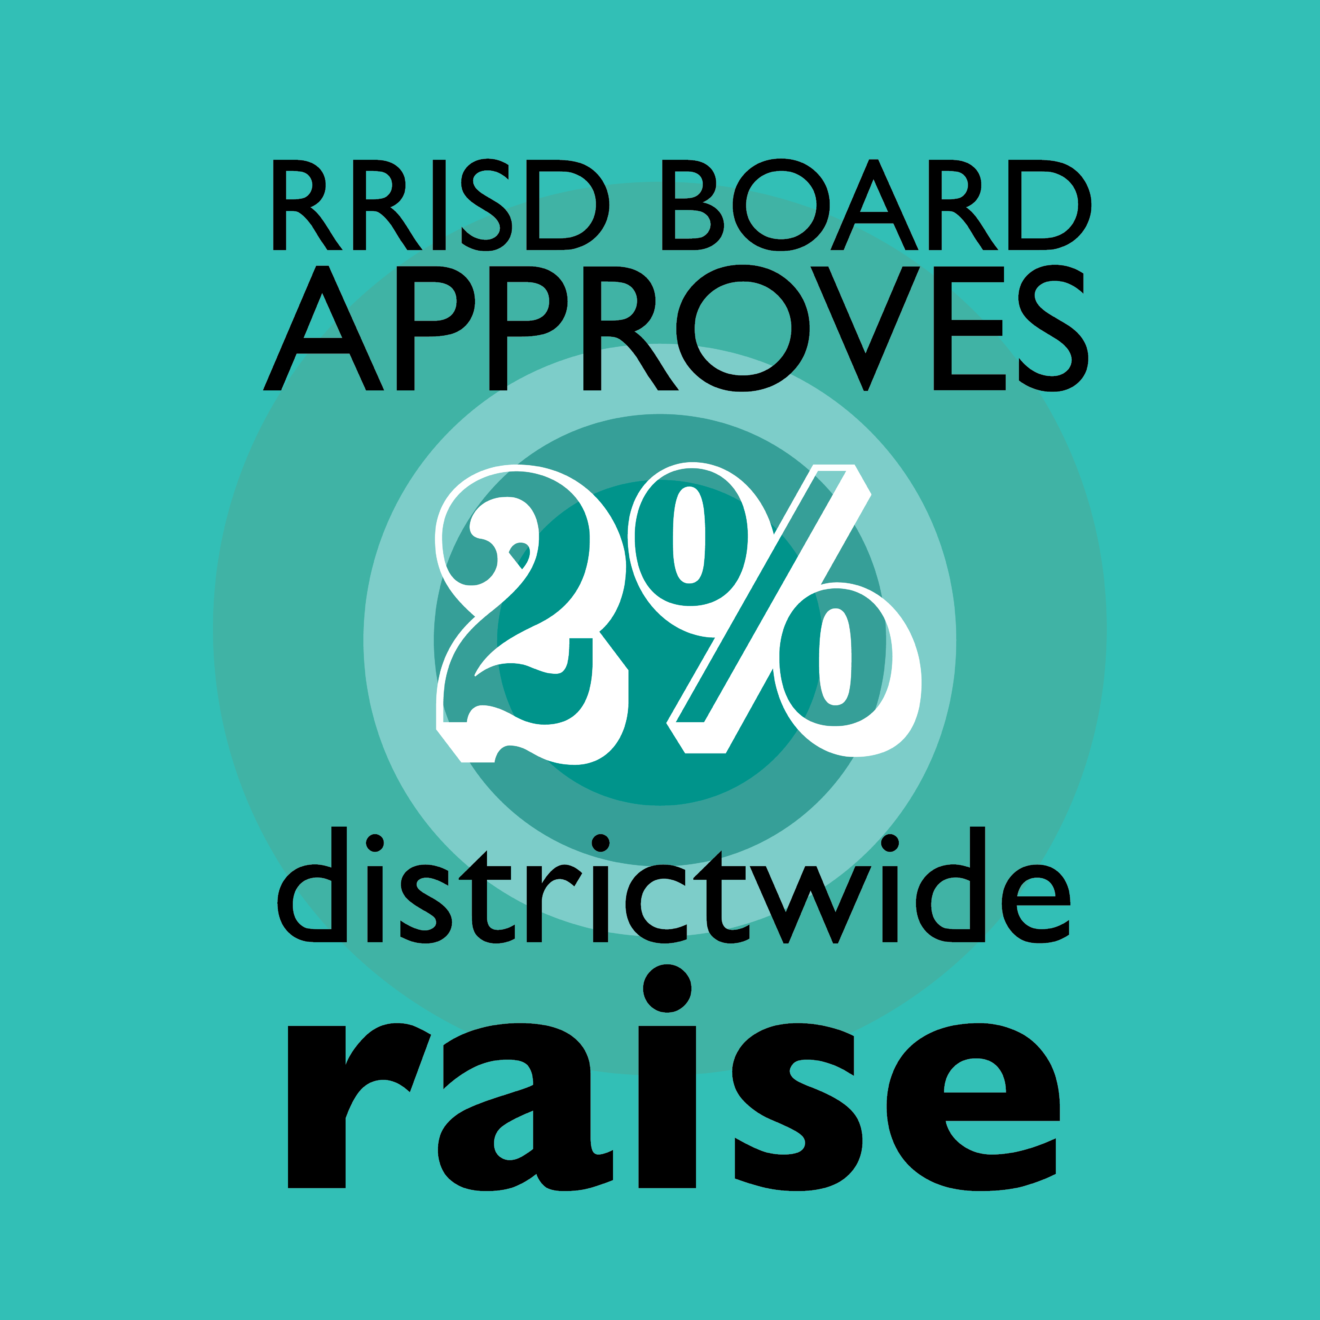 RRISD Board of Trustees approve 2 percent districtwide salary increase